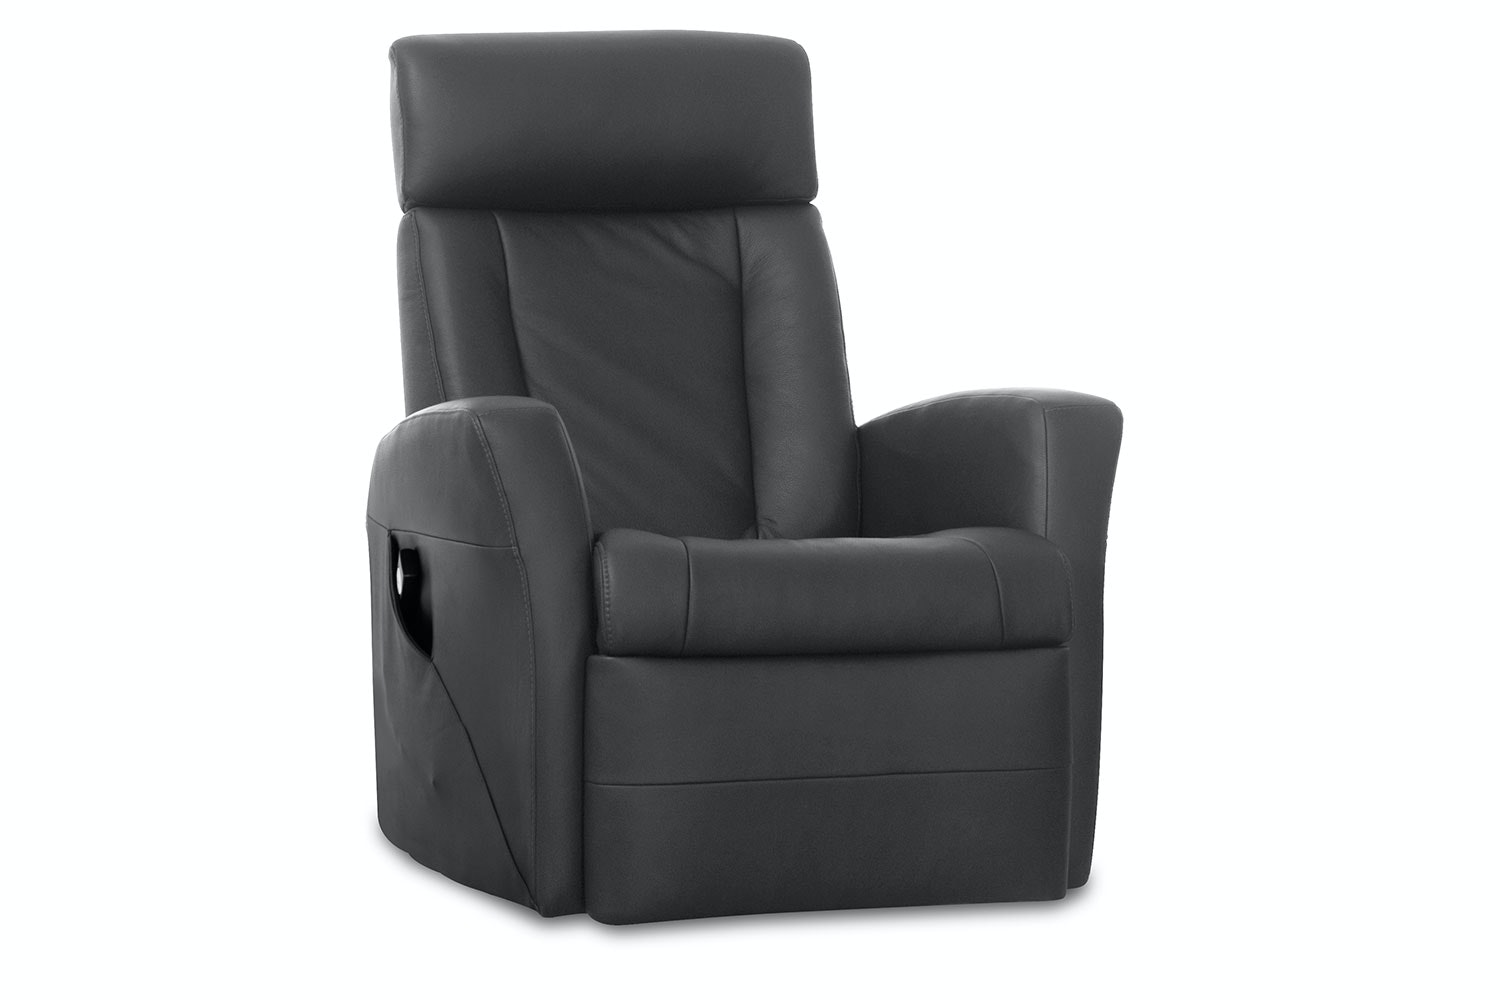 Lotus Leather Multi Function Recliner Chair - Standard - Trend - IMG